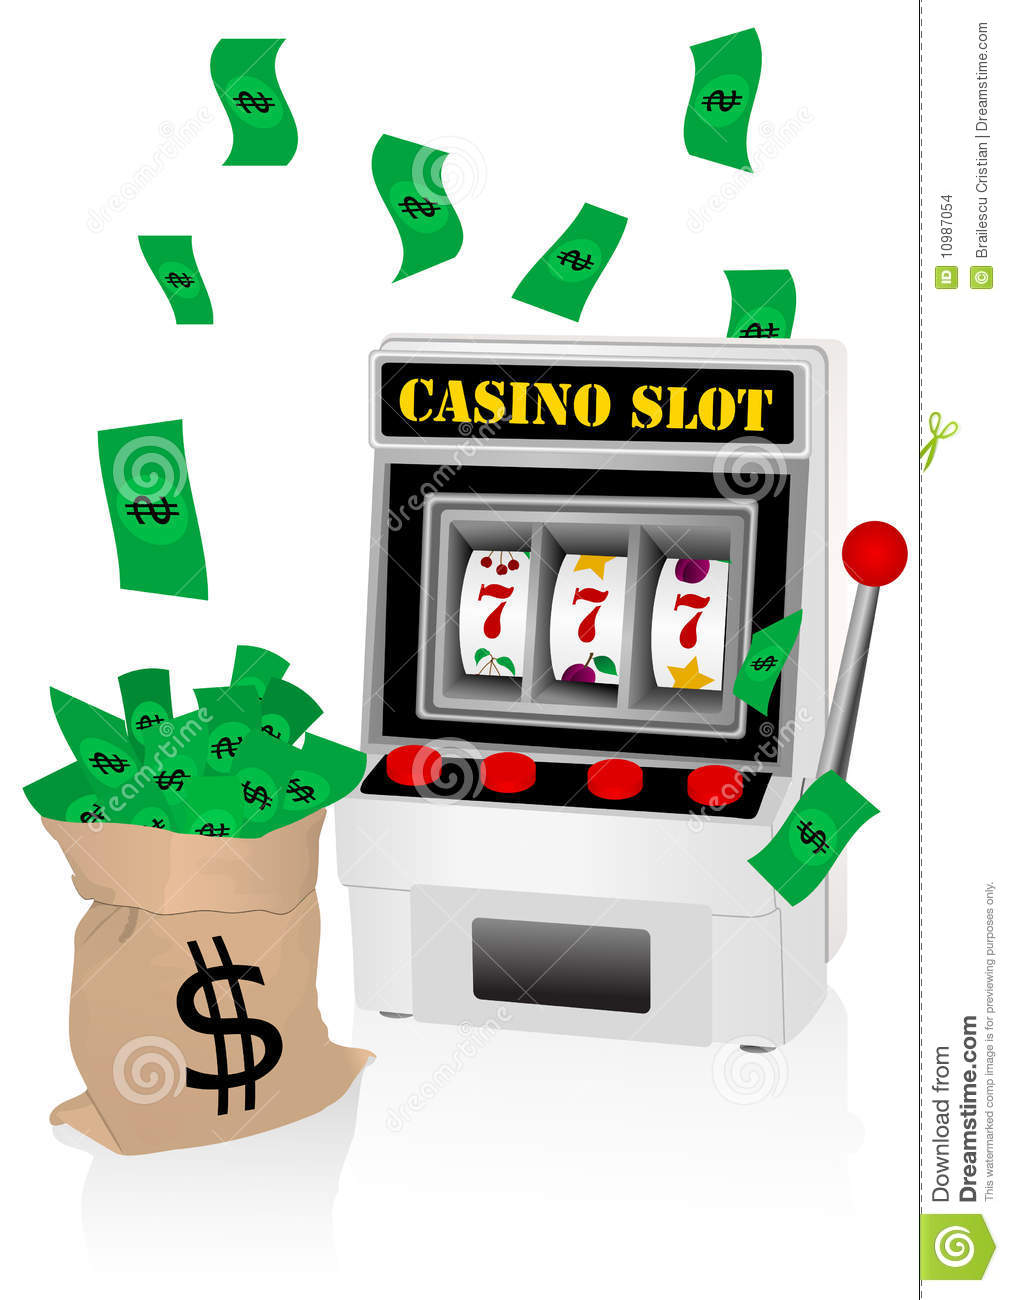 Lotto licenze slot - 63857